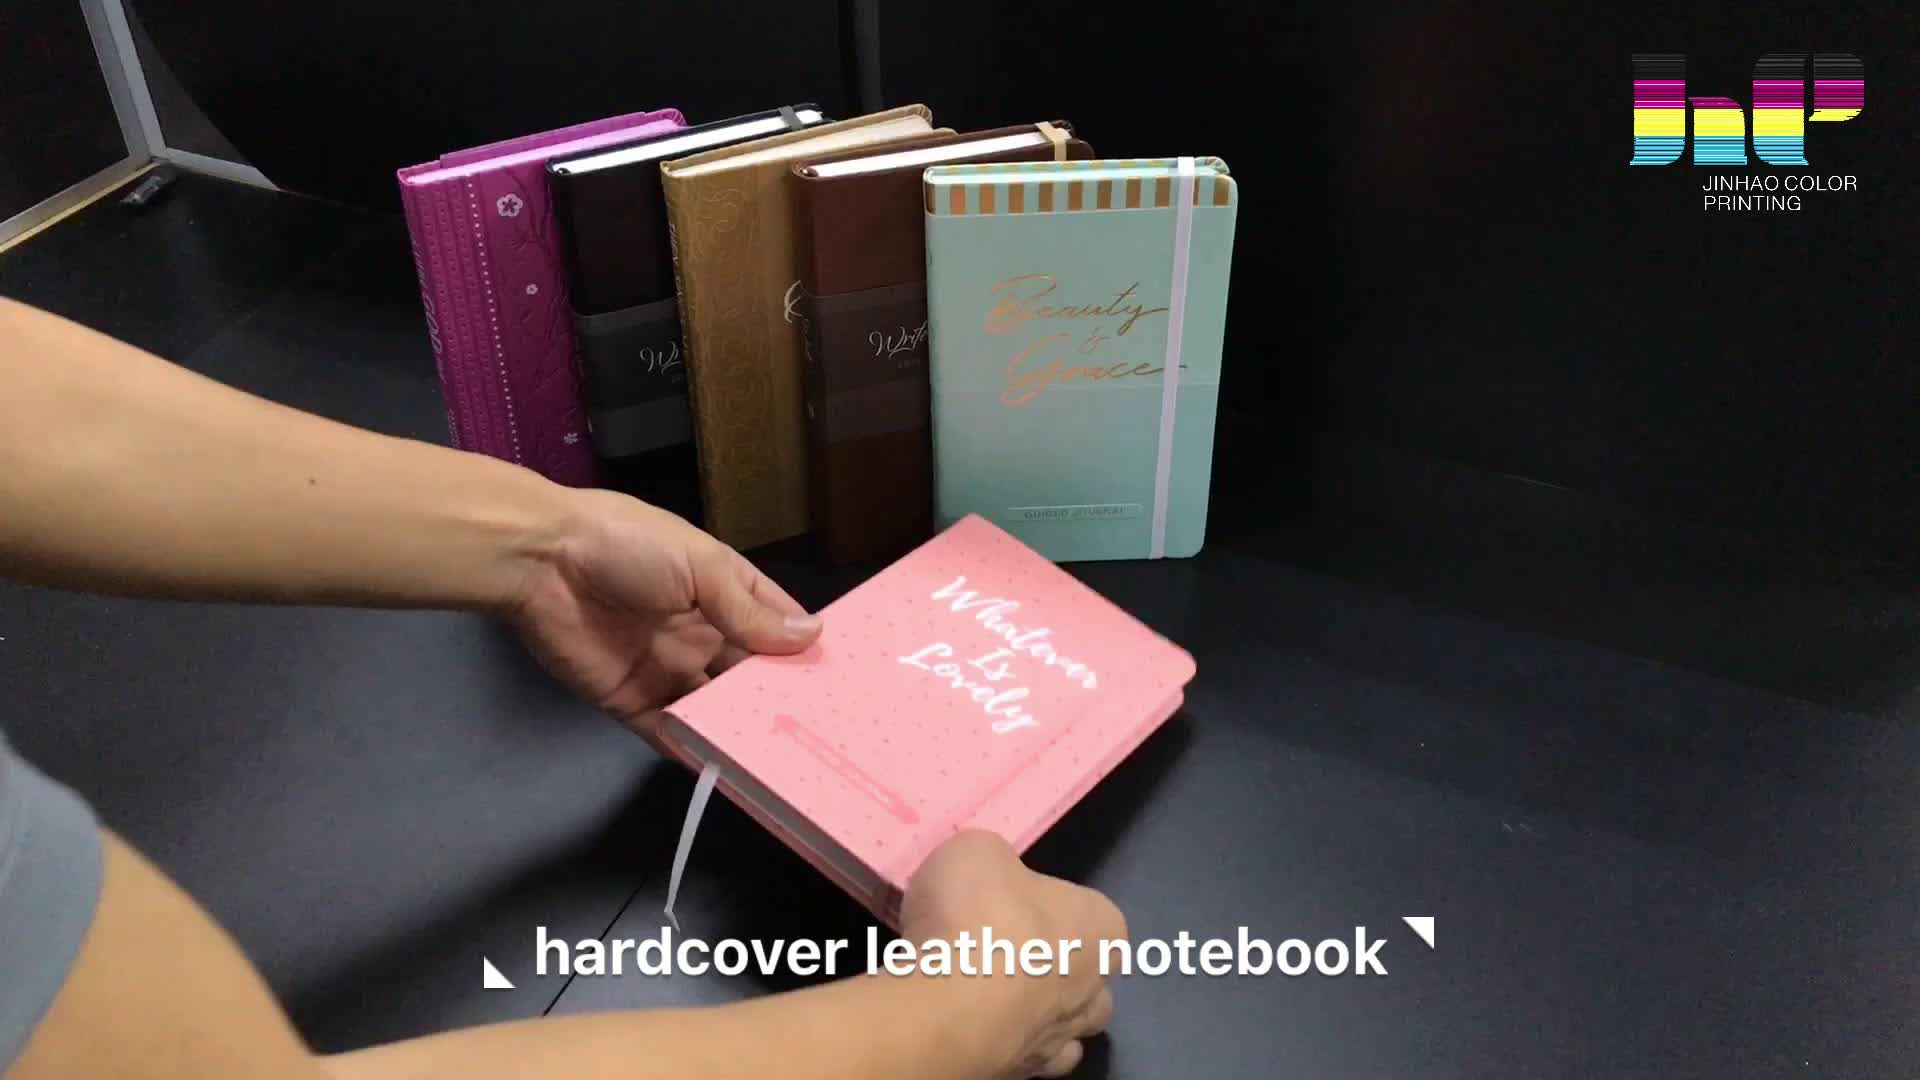 Custom printing a5 hardcover book planner journal Handmade Diary Eco friendly Notebook blackpink  Cartoon Notebook